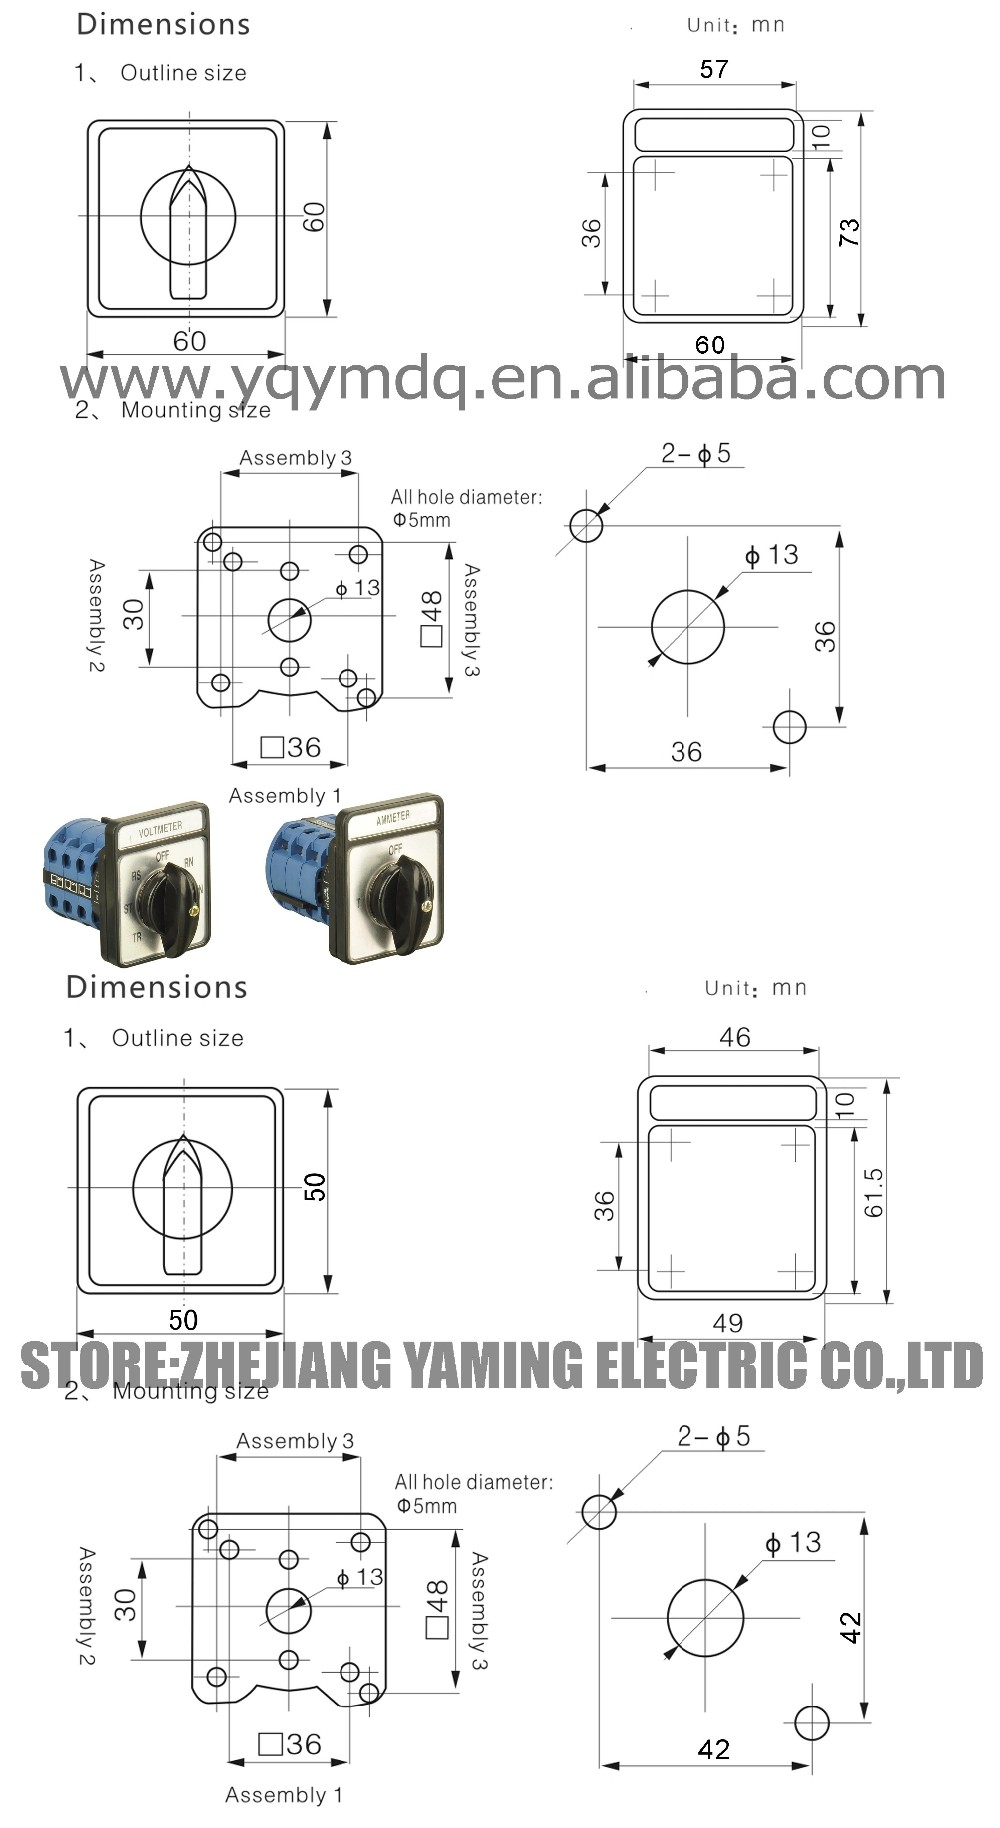 Yaming cam switch lw26 20lh33 ammeter current conversion silver yaming cam switch lw26 20lh33 ammeter current conversion silver contact 20a 3 poles cheapraybanclubmaster Image collections